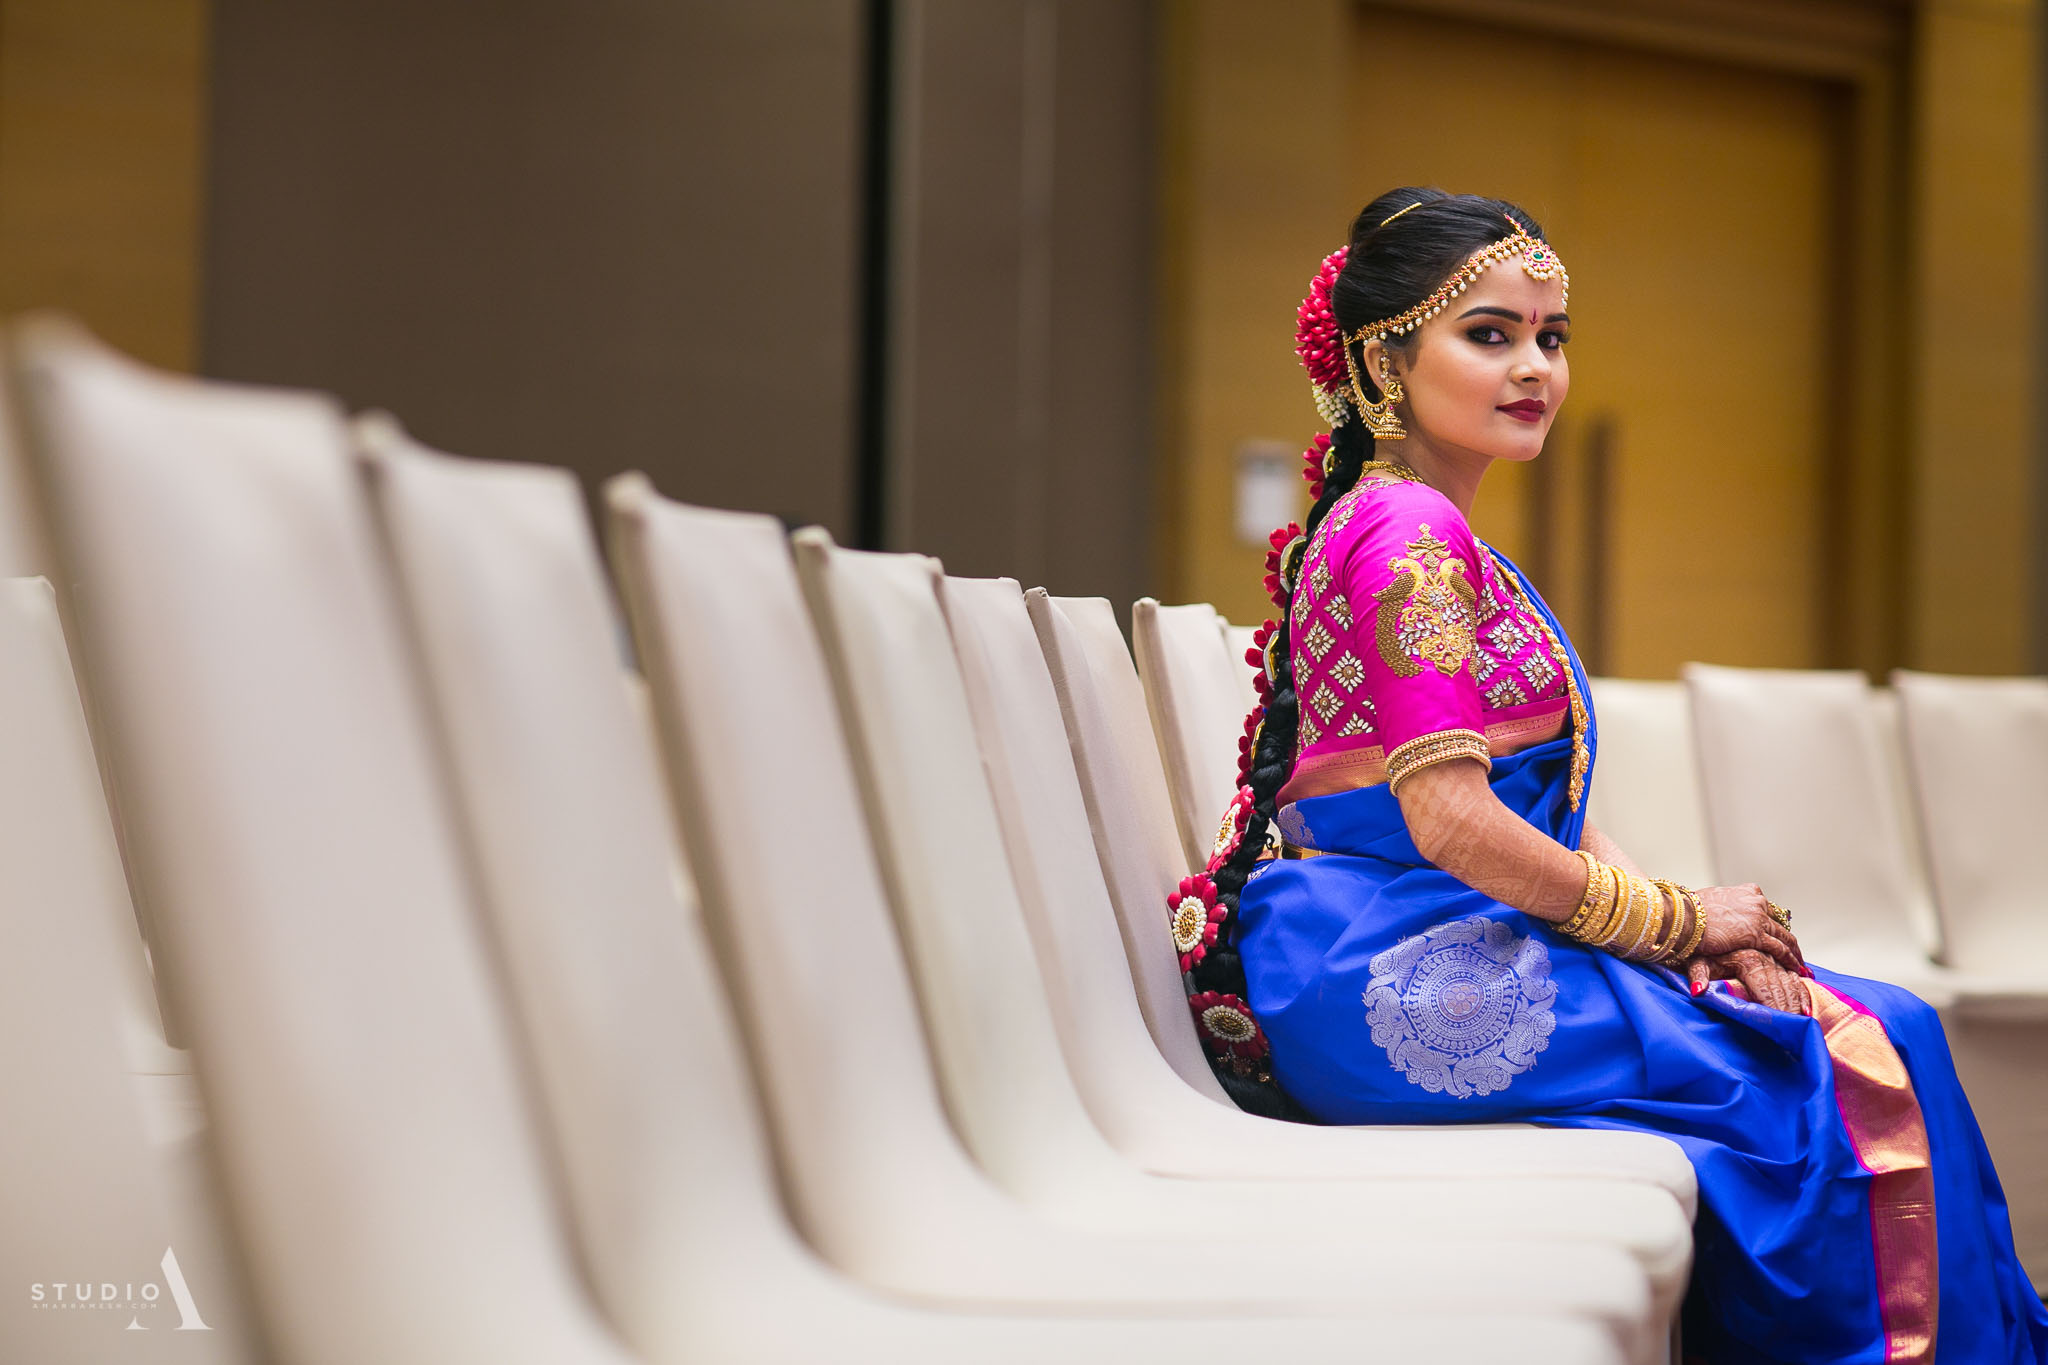 Destination-wedding-photographer-chennai-4